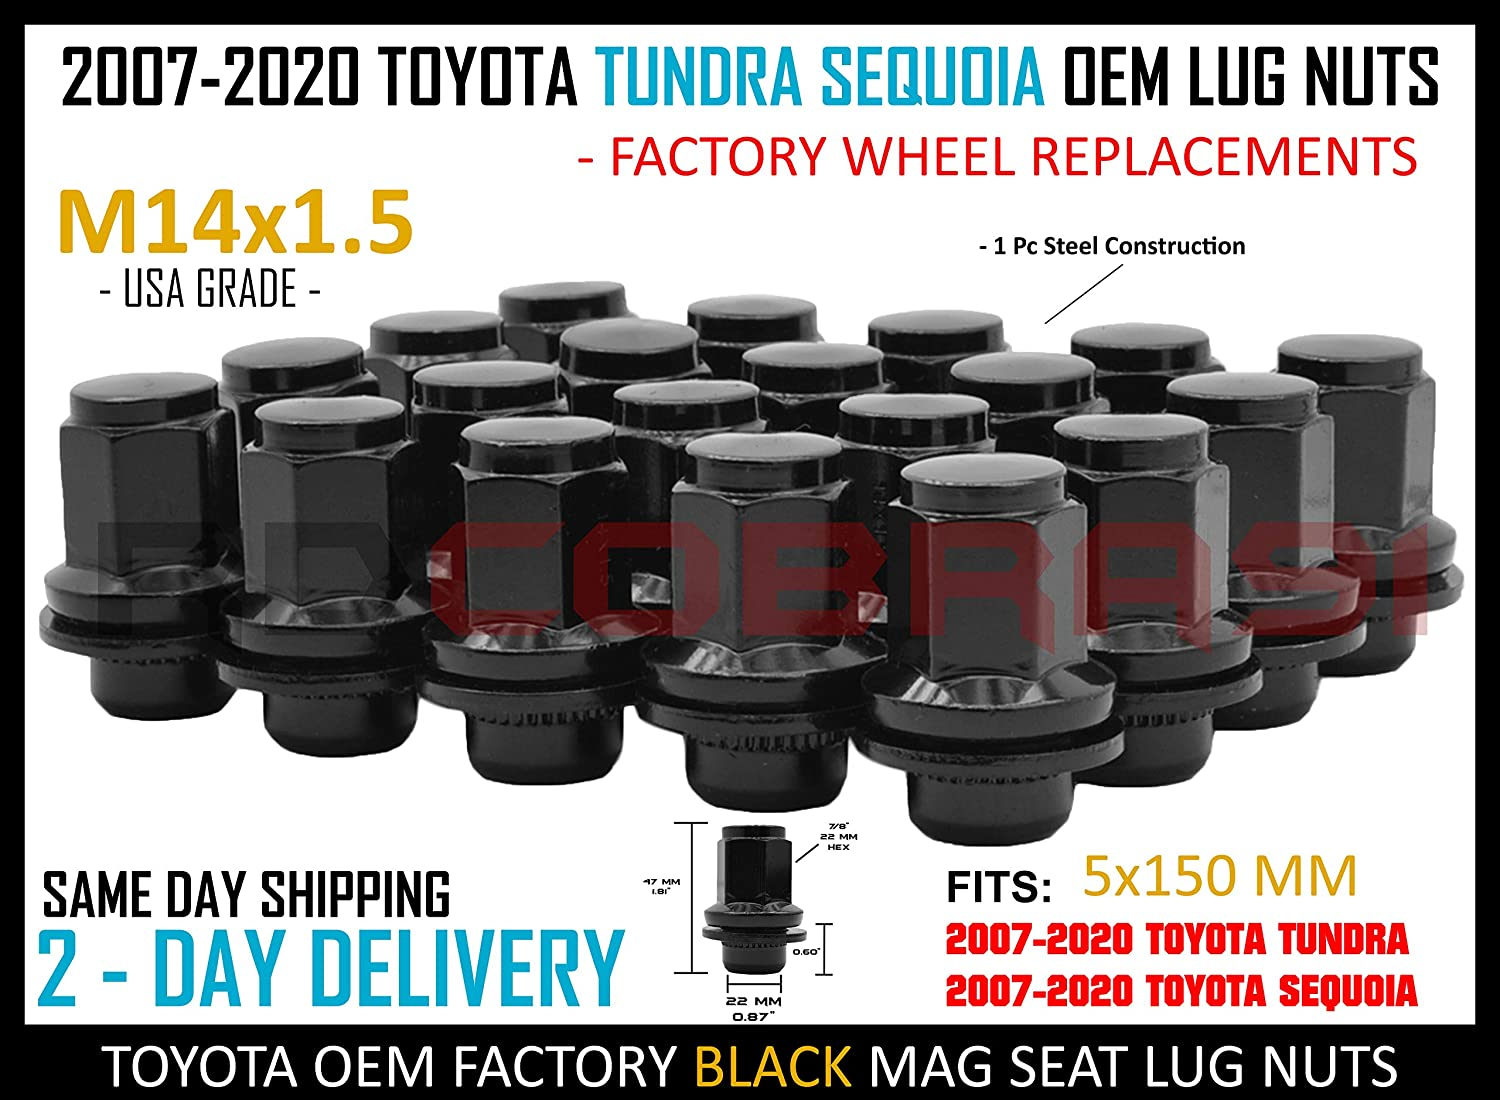 RdCobra91 20 Pc M14x1.5 Black OEM Factory Replacement Mag Seat Lug Nuts 5x150 Works with Toyota 2007-2020 Tundra Sequoia